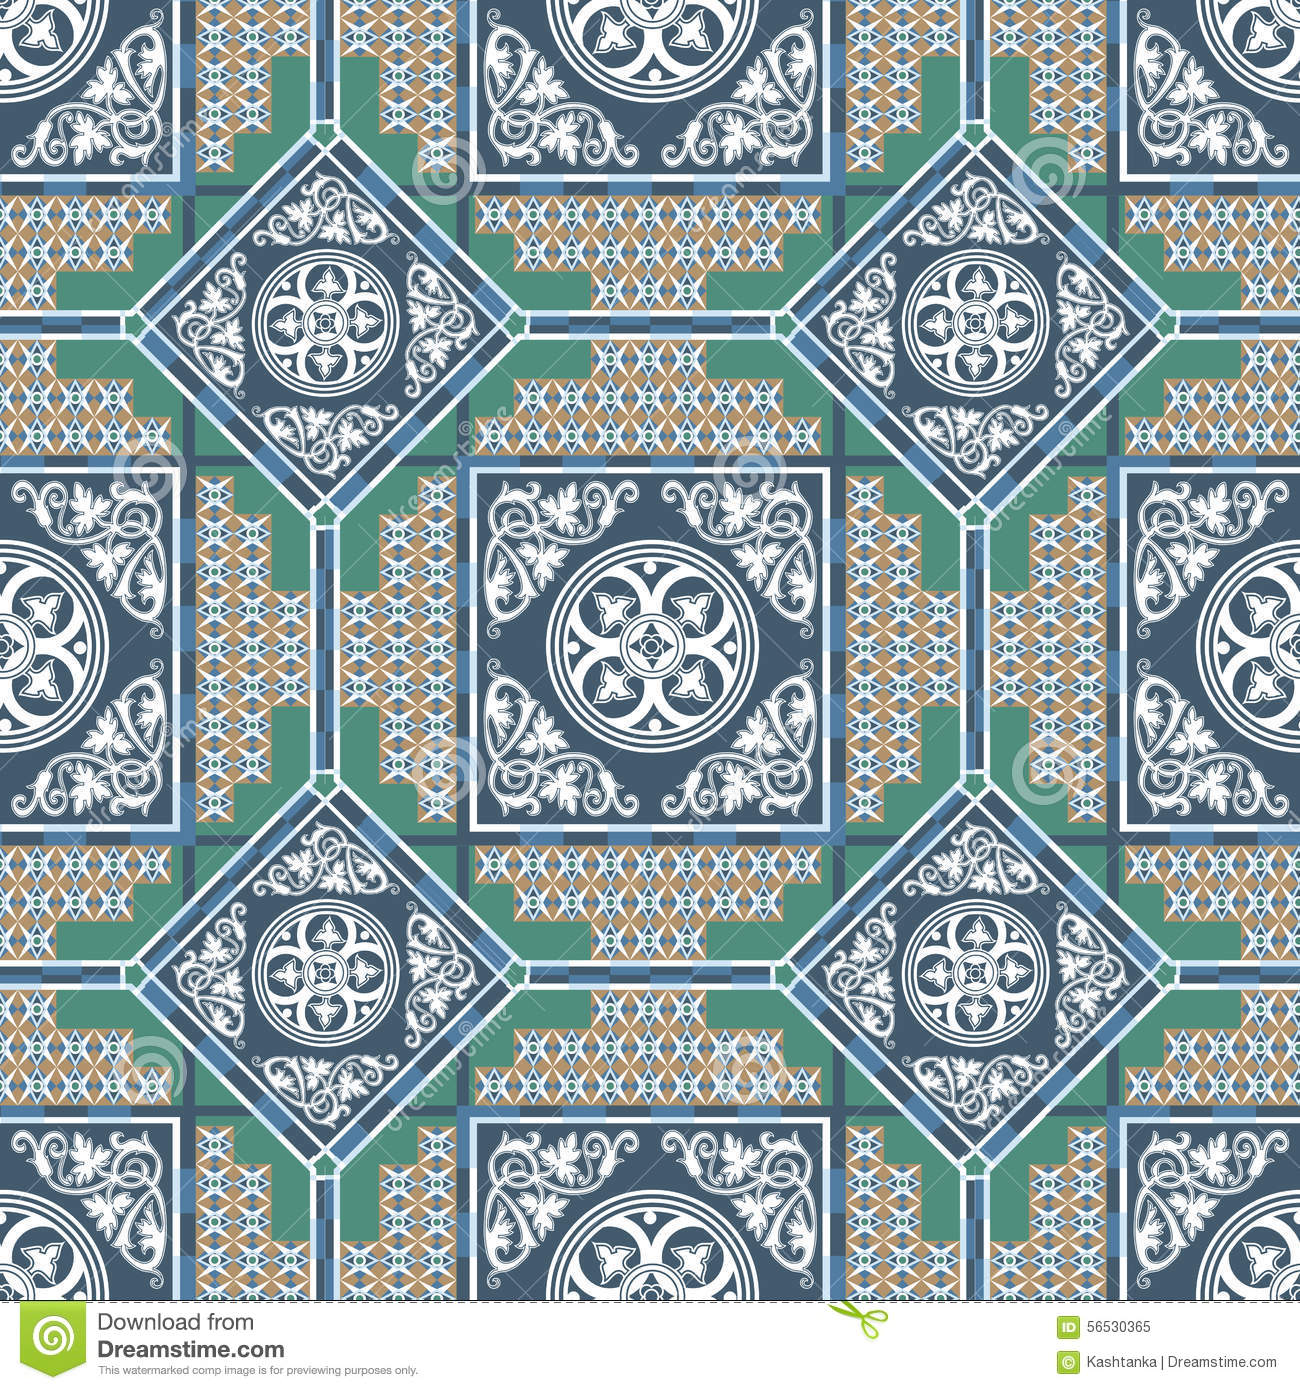 Moroccan geometric pattern royalty free stock photos image 13547078 - Filename Moroccan Pattern Vector Seamless Patchwork Background Ornaments Geometric Patterns Stylized Flowers Leaves Texture 56530365 Jpg